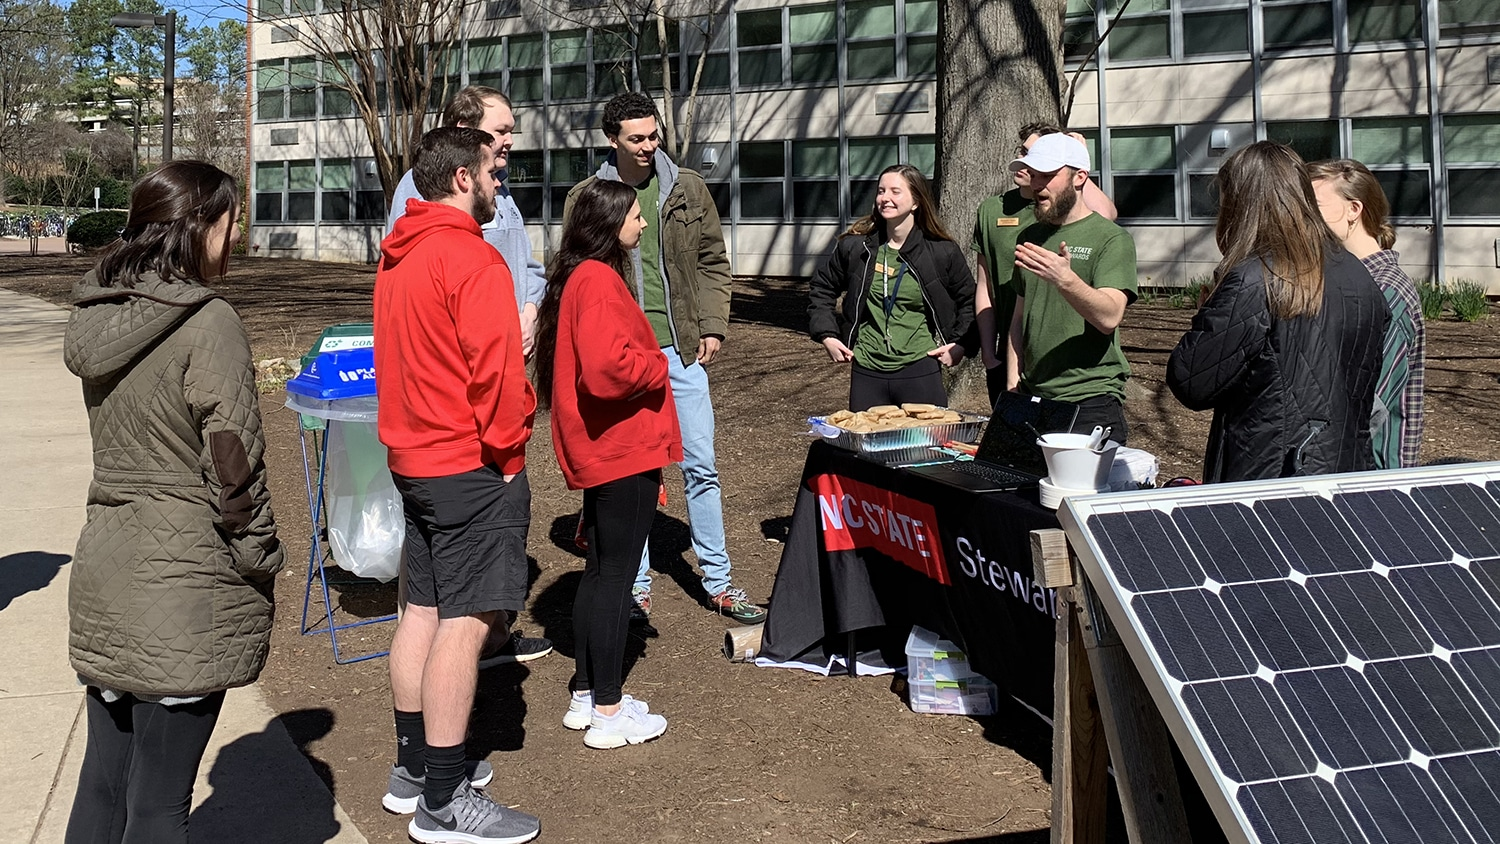 NC State Stewards, wearing matching green T-shirts, speak to a small group of fellow students outside next to a solar panel.